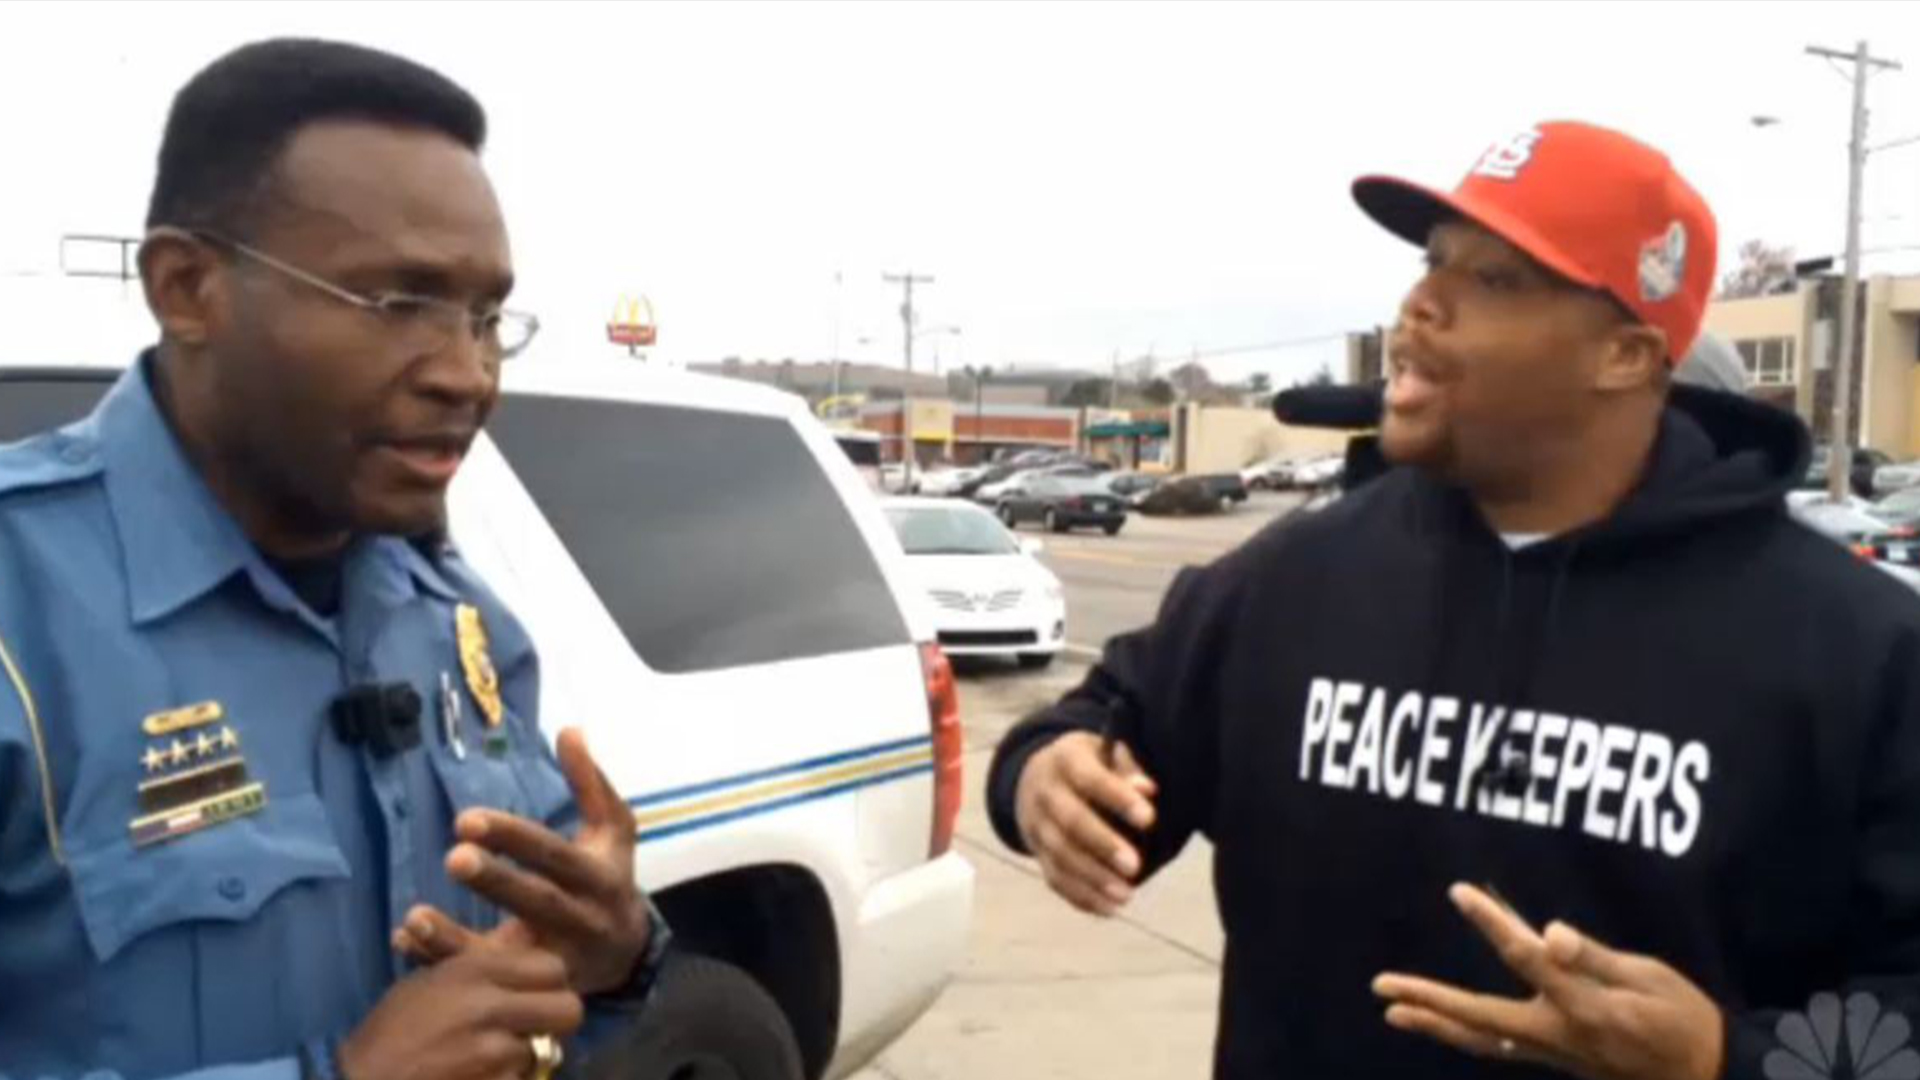 'We Need This': A Moment of Dialogue Between Cops, Community in Ferguson